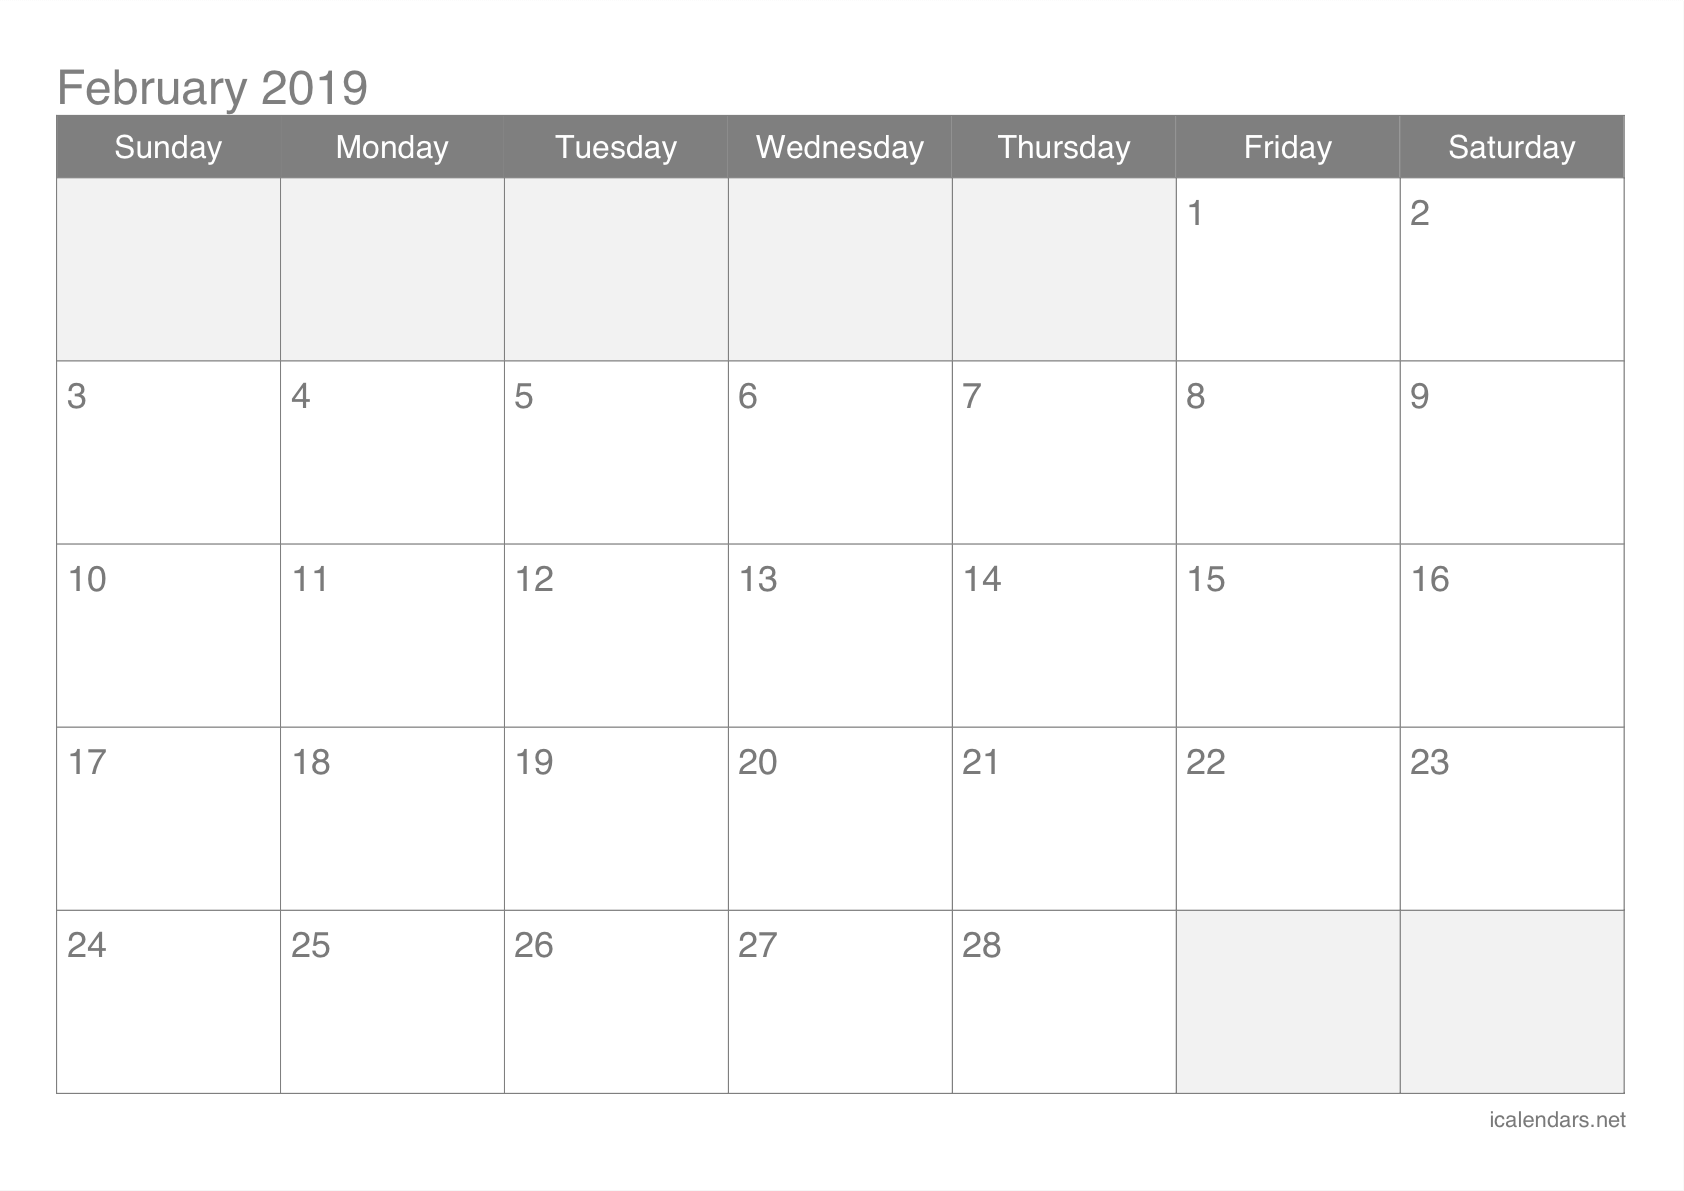 image relating to Printable February Calendar identified as February 2019 Printable Calendar -